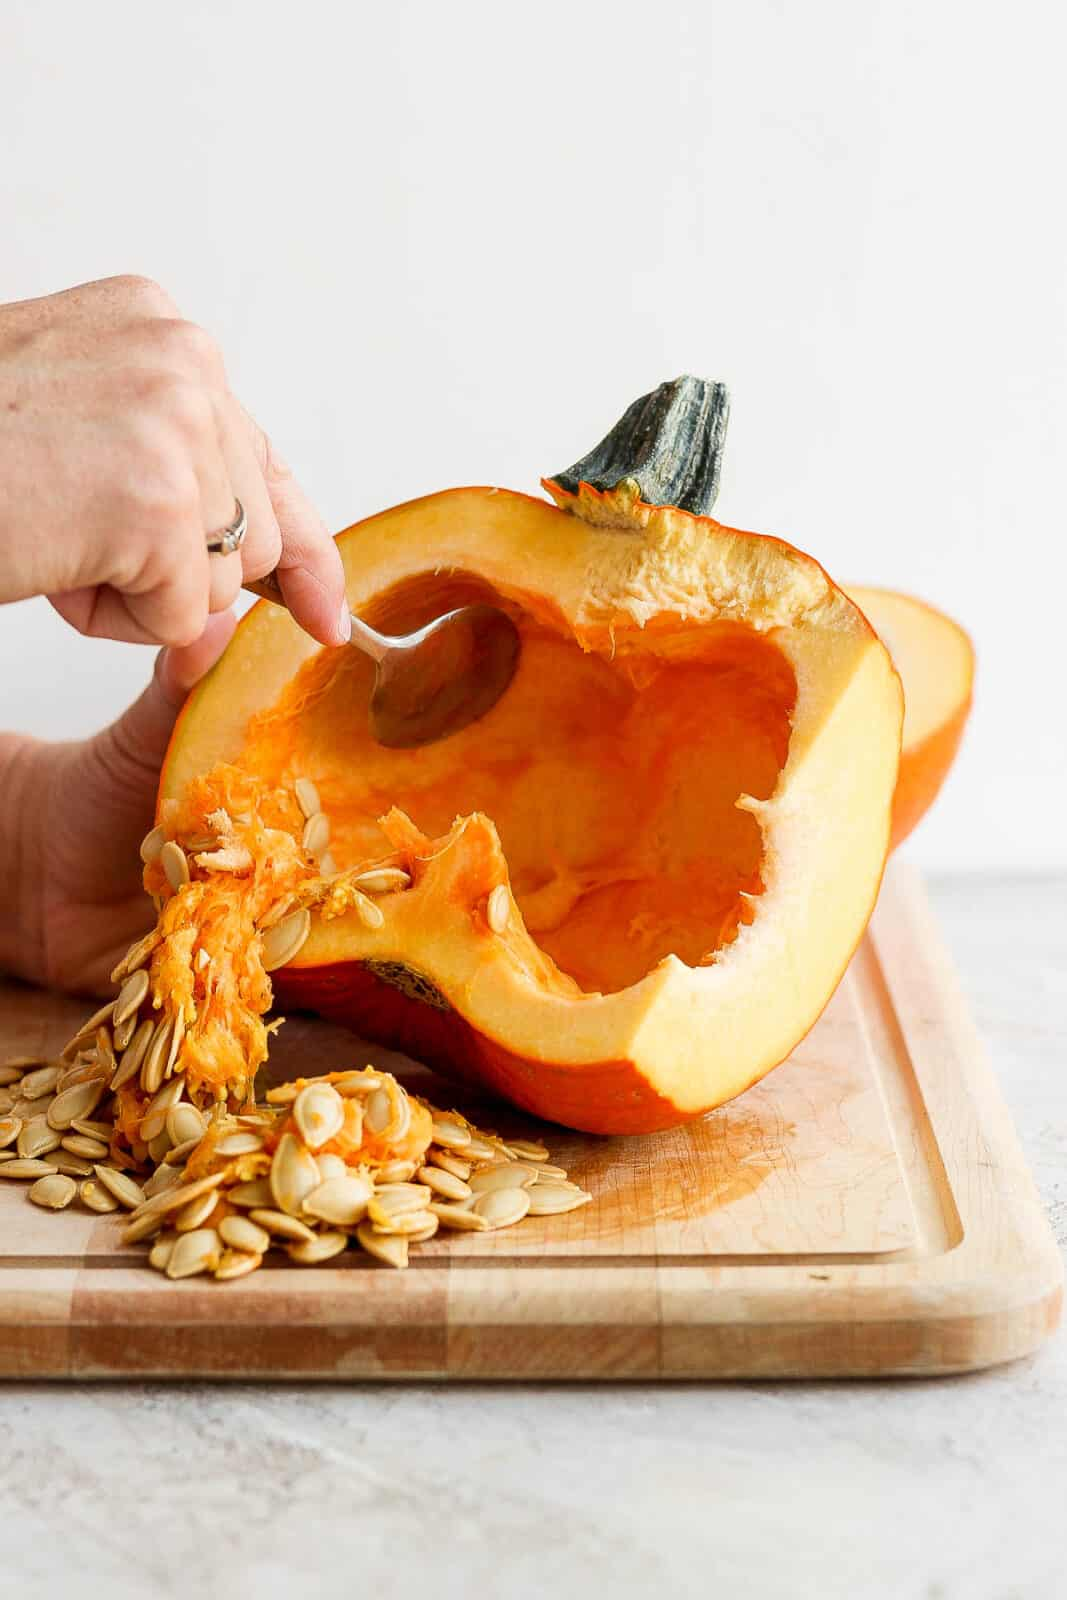 A spoon scooping the seeds and strings out of the pumpkin.